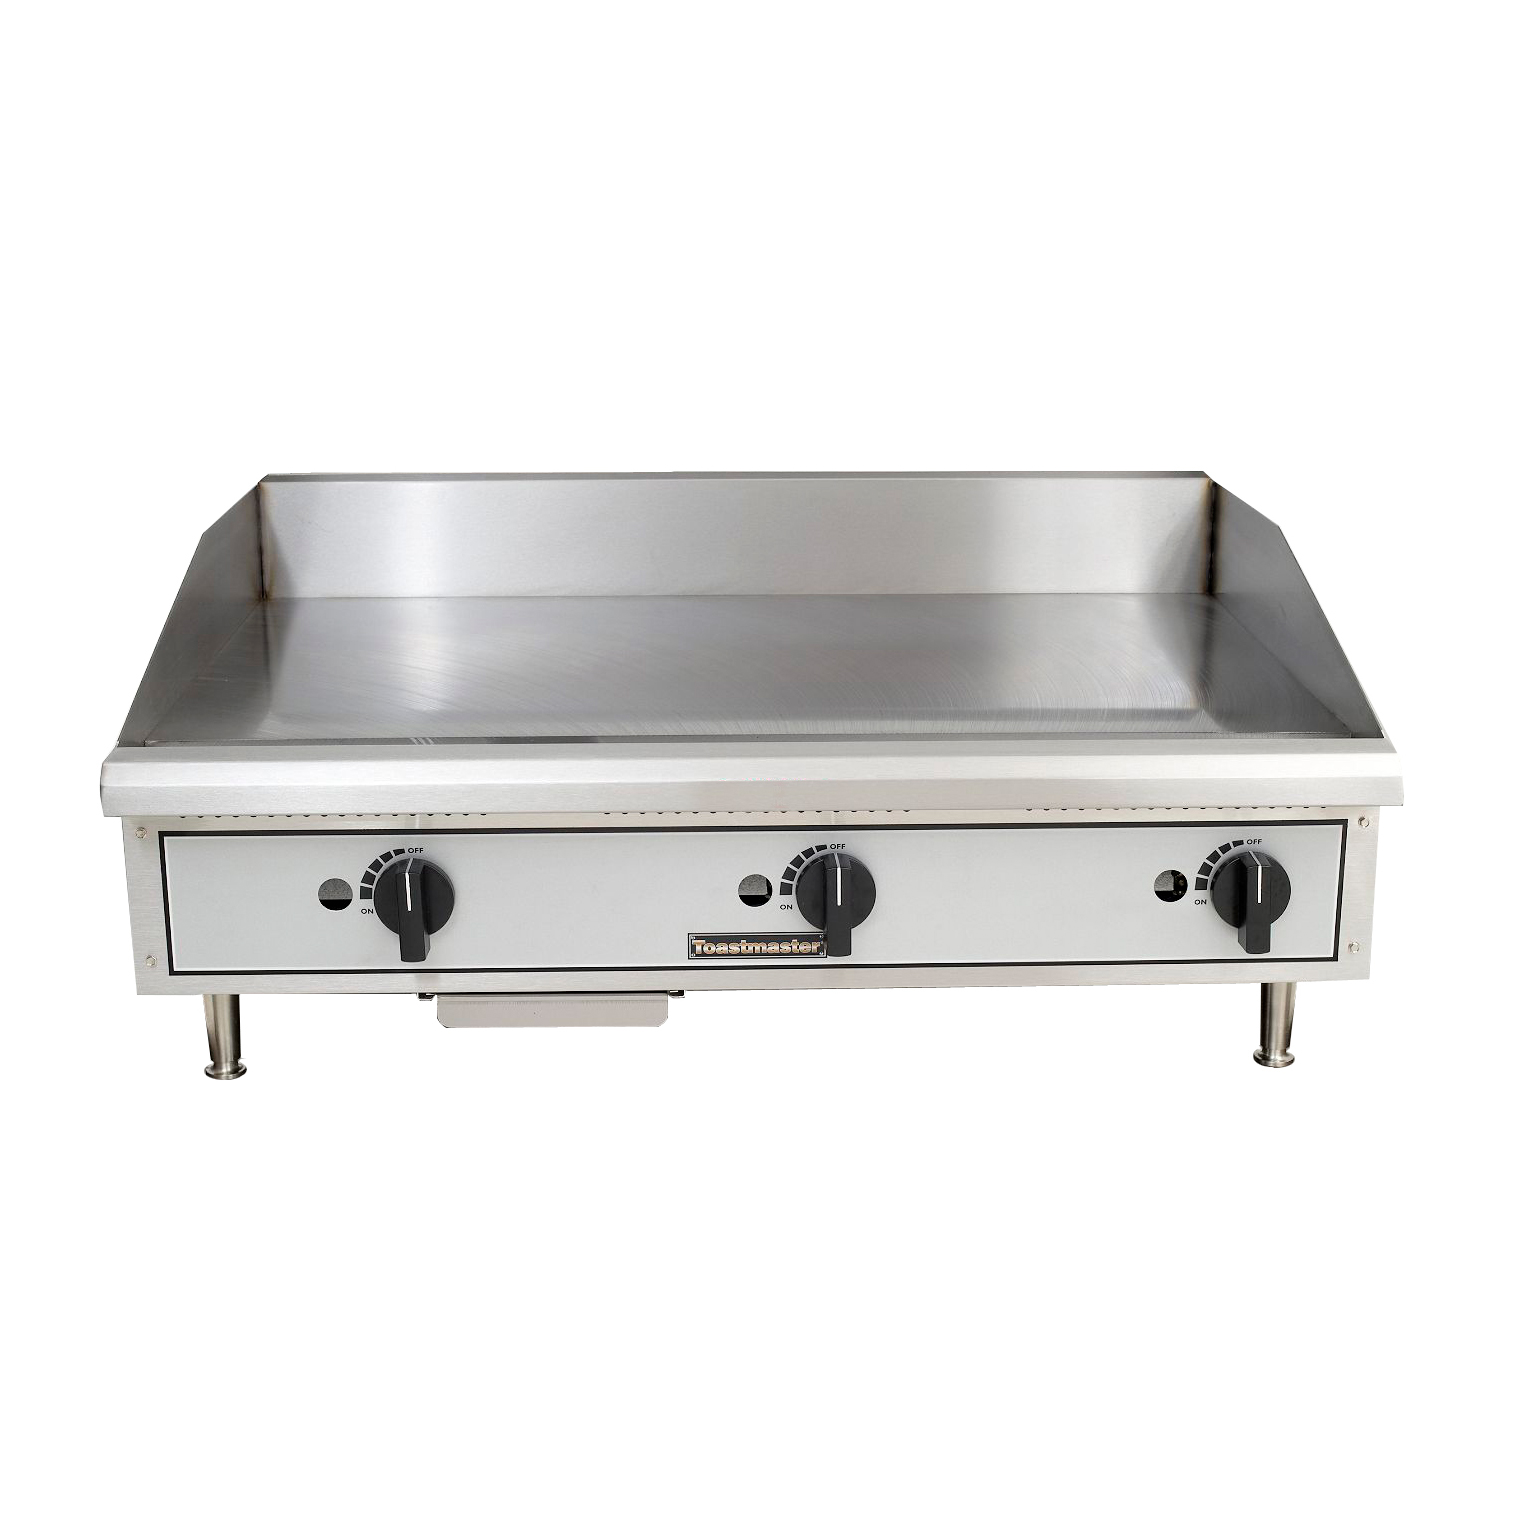 Toastmaster TMGM36 griddle, gas, countertop